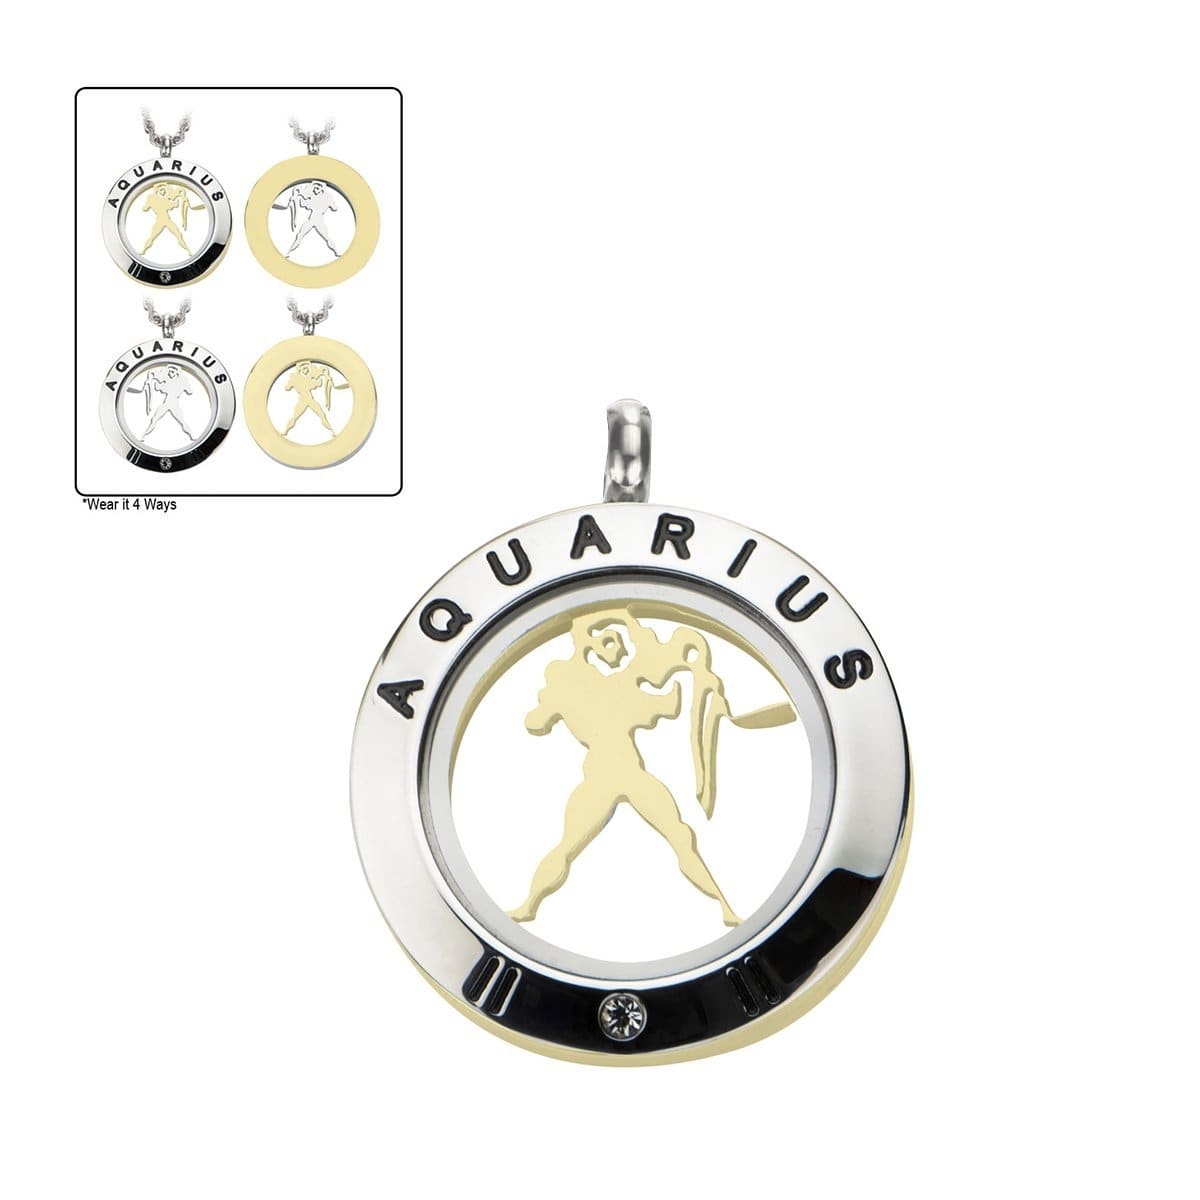 4-in-1 Dual Tone Stainless Steel Mix & Match Aquarius Pendant & Chain Pendants